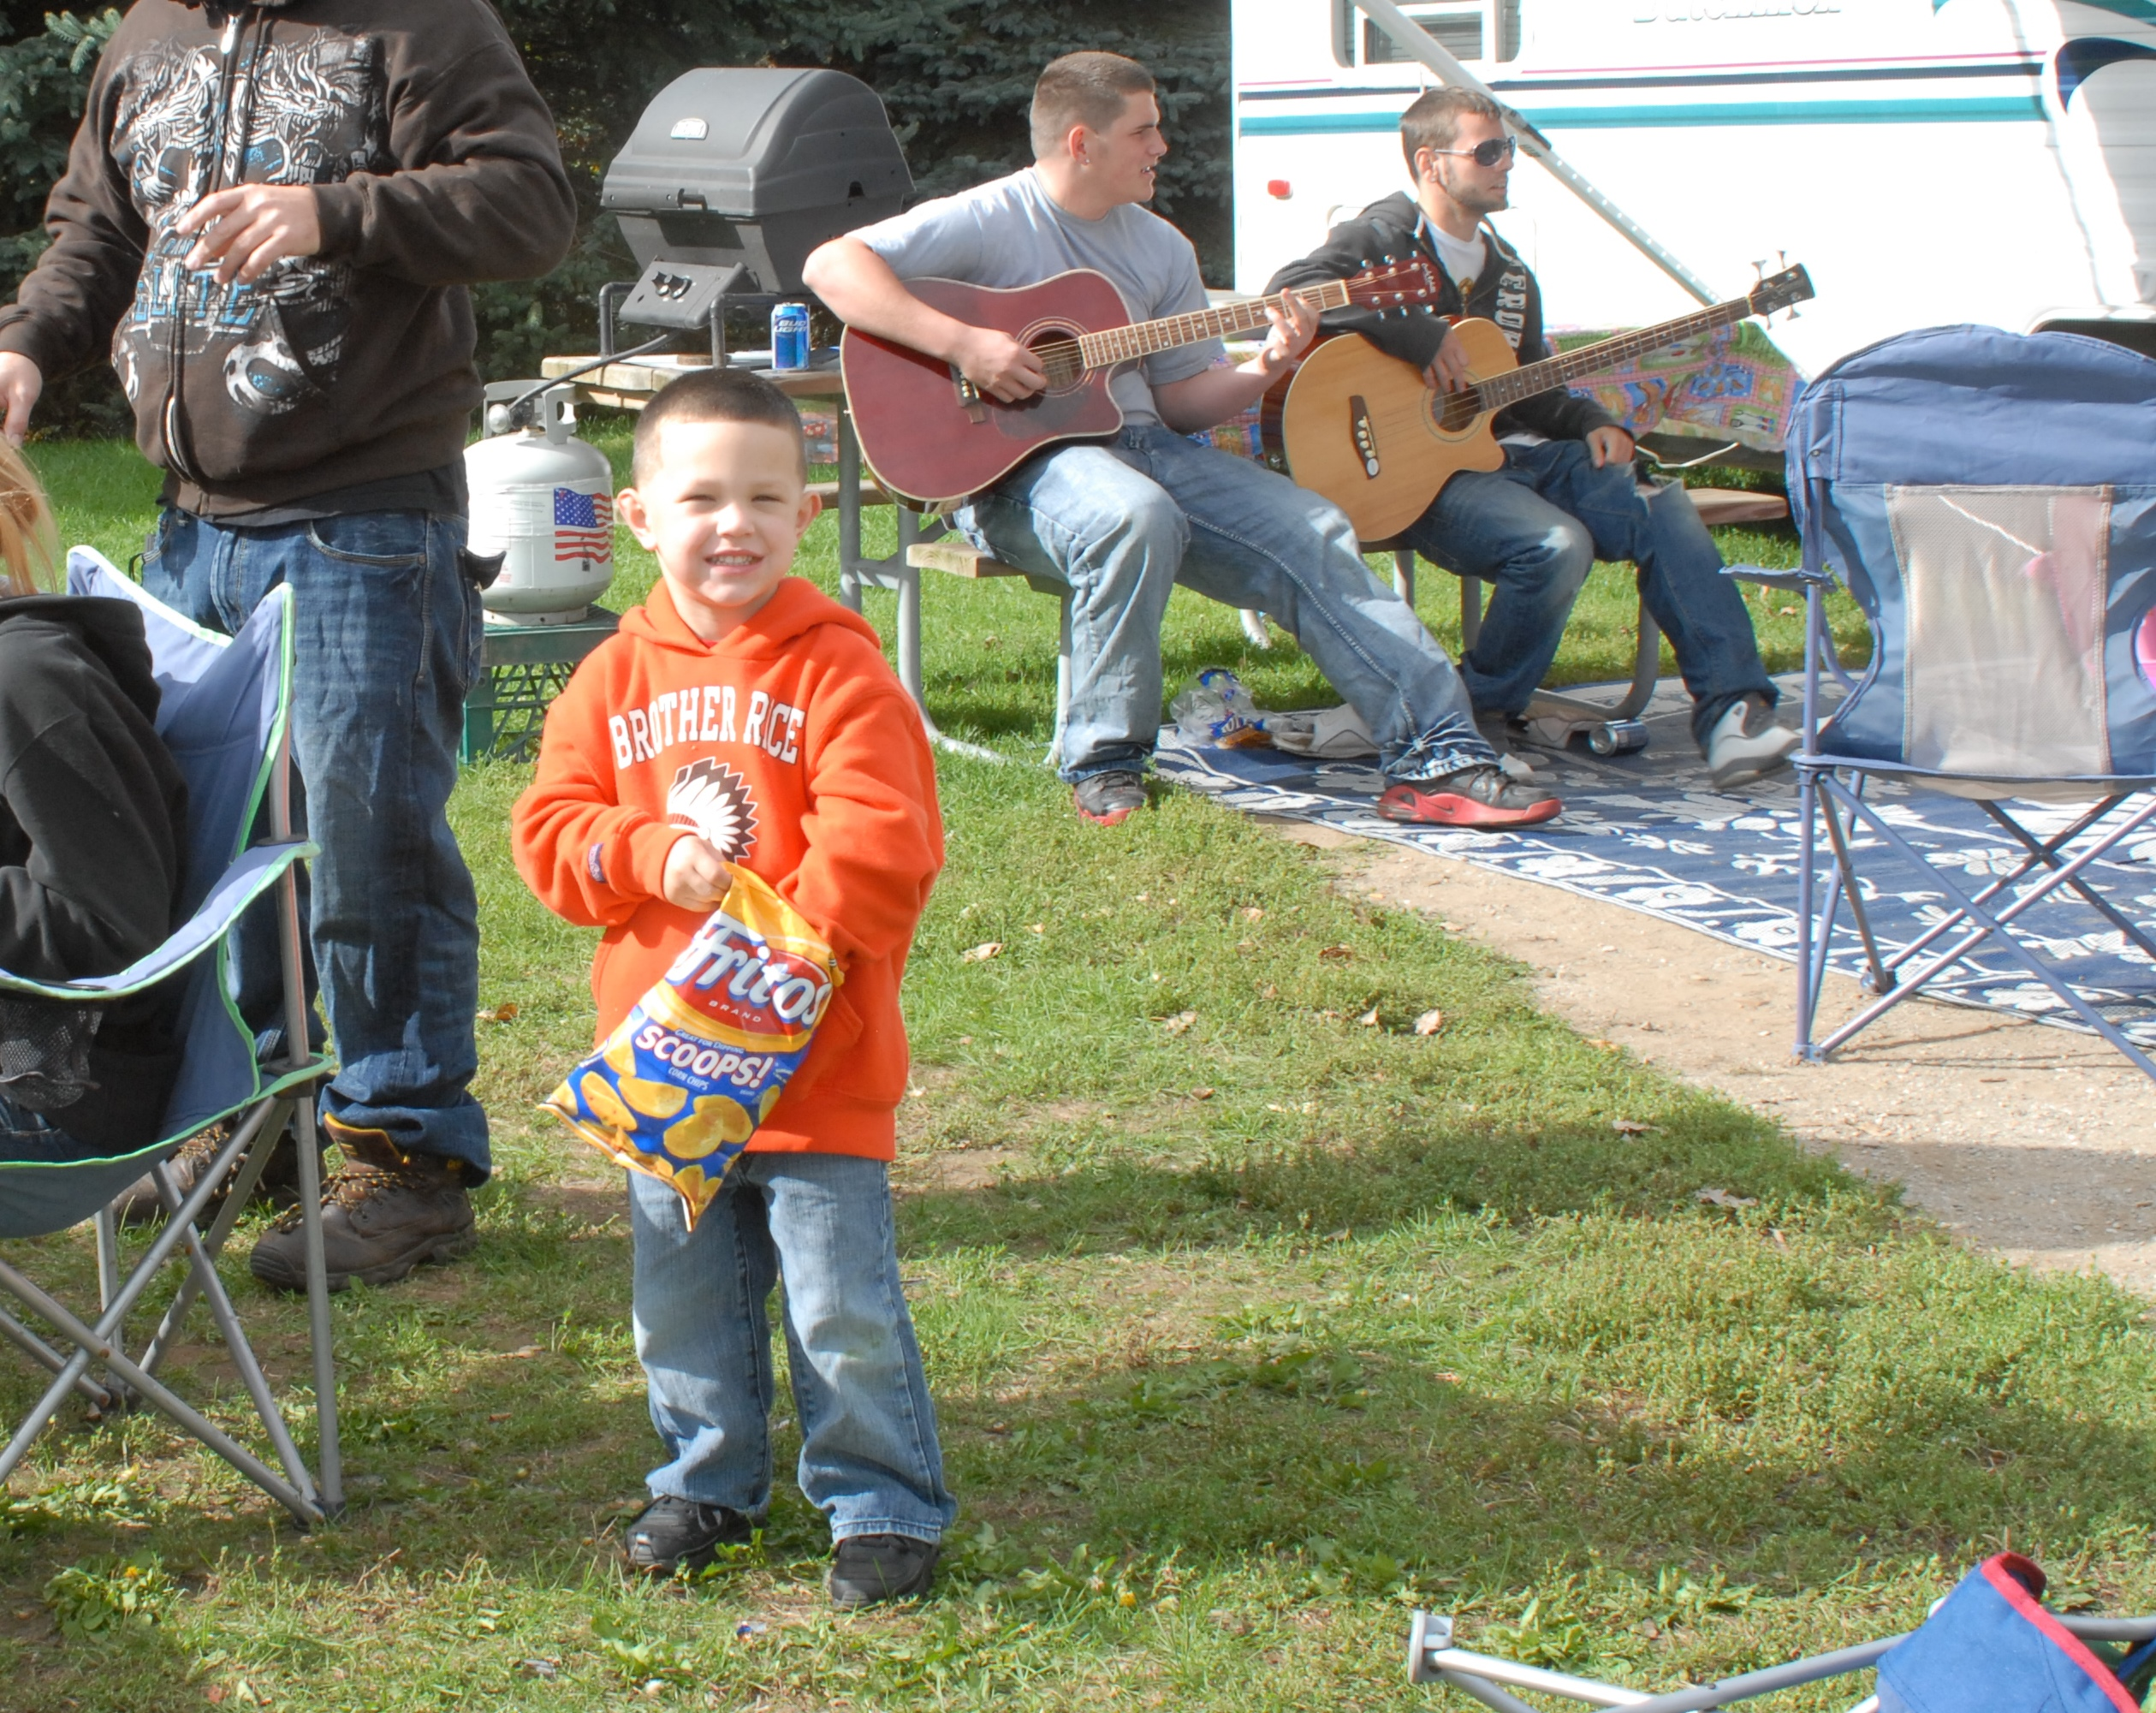 Little boy enjoying chips at the campground while his friends play guitar in the background.